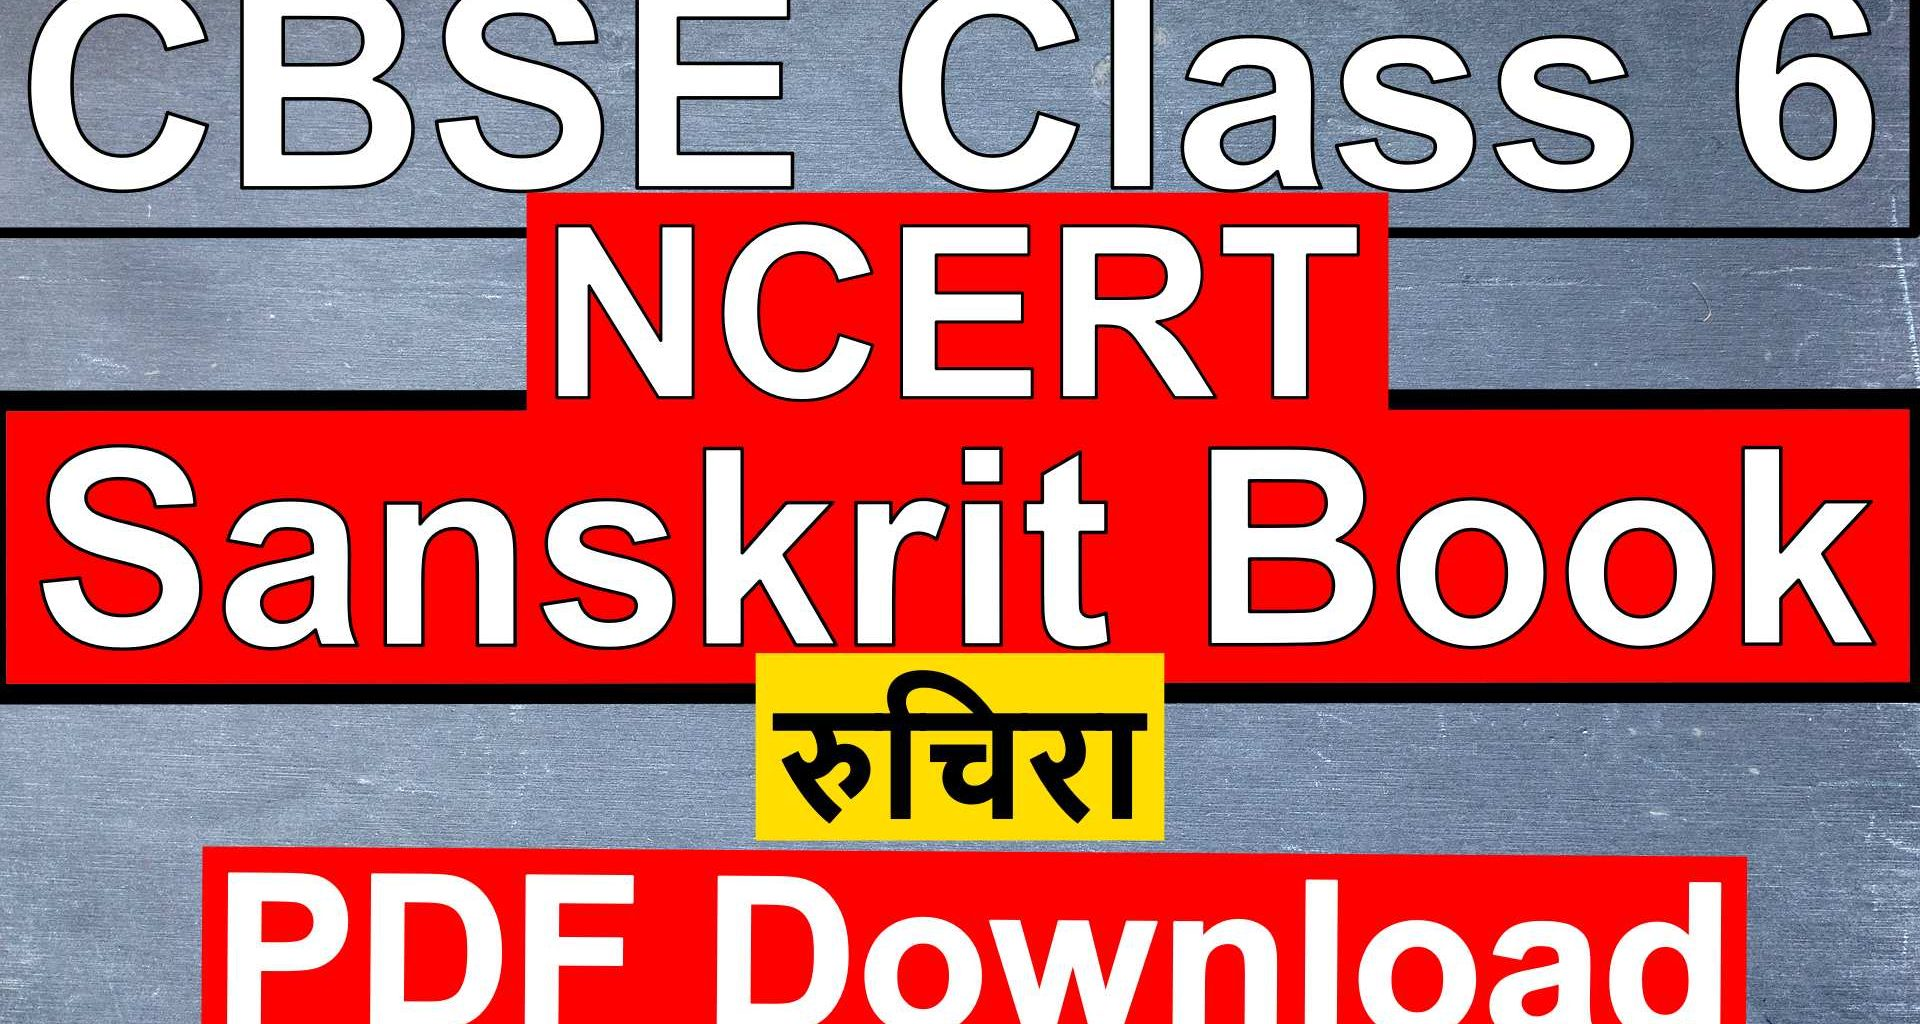 CBSE Class 6 NCERT Sanskrit book PDF download - All chapters in a single PDF file